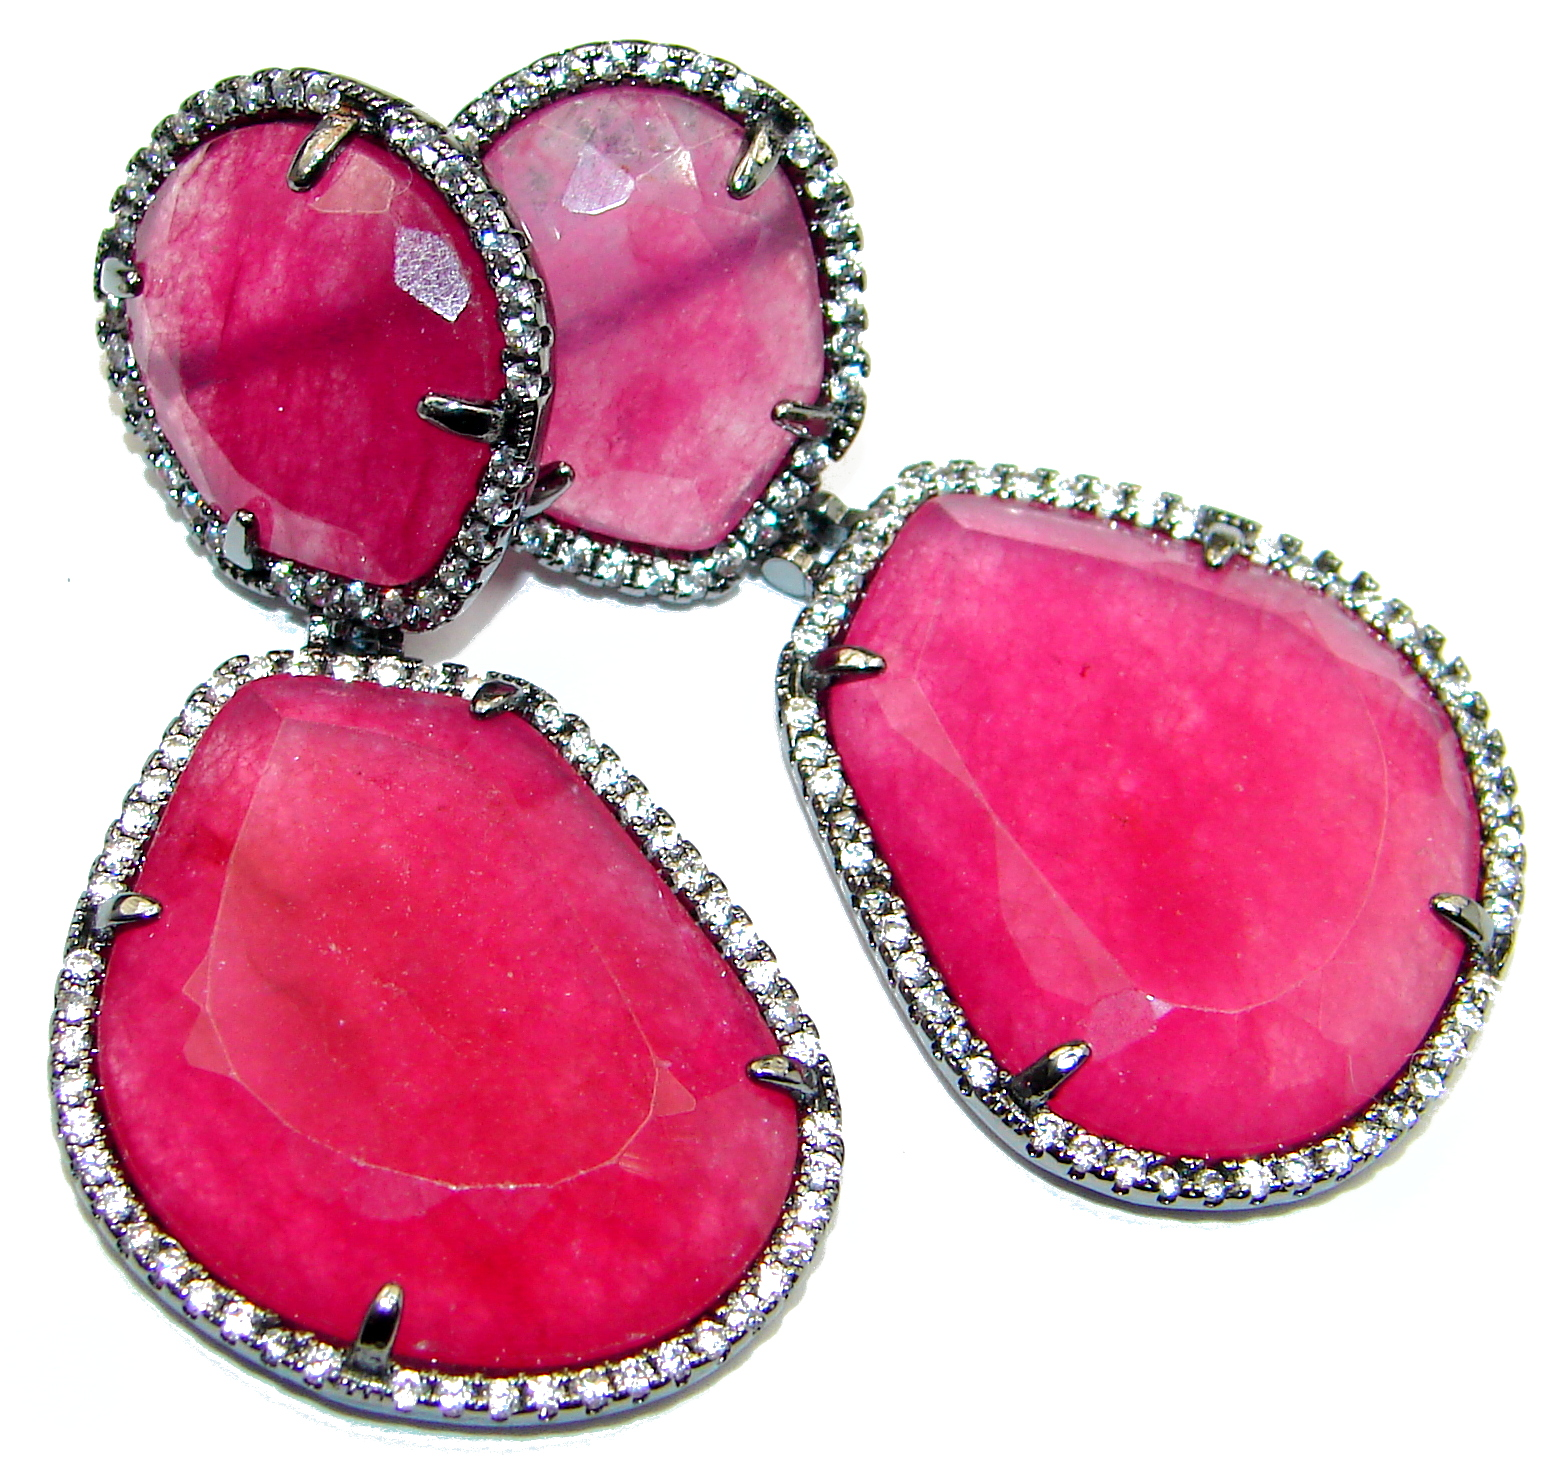 Spectacular Ruby color quartz .925 Sterling Silver earrings